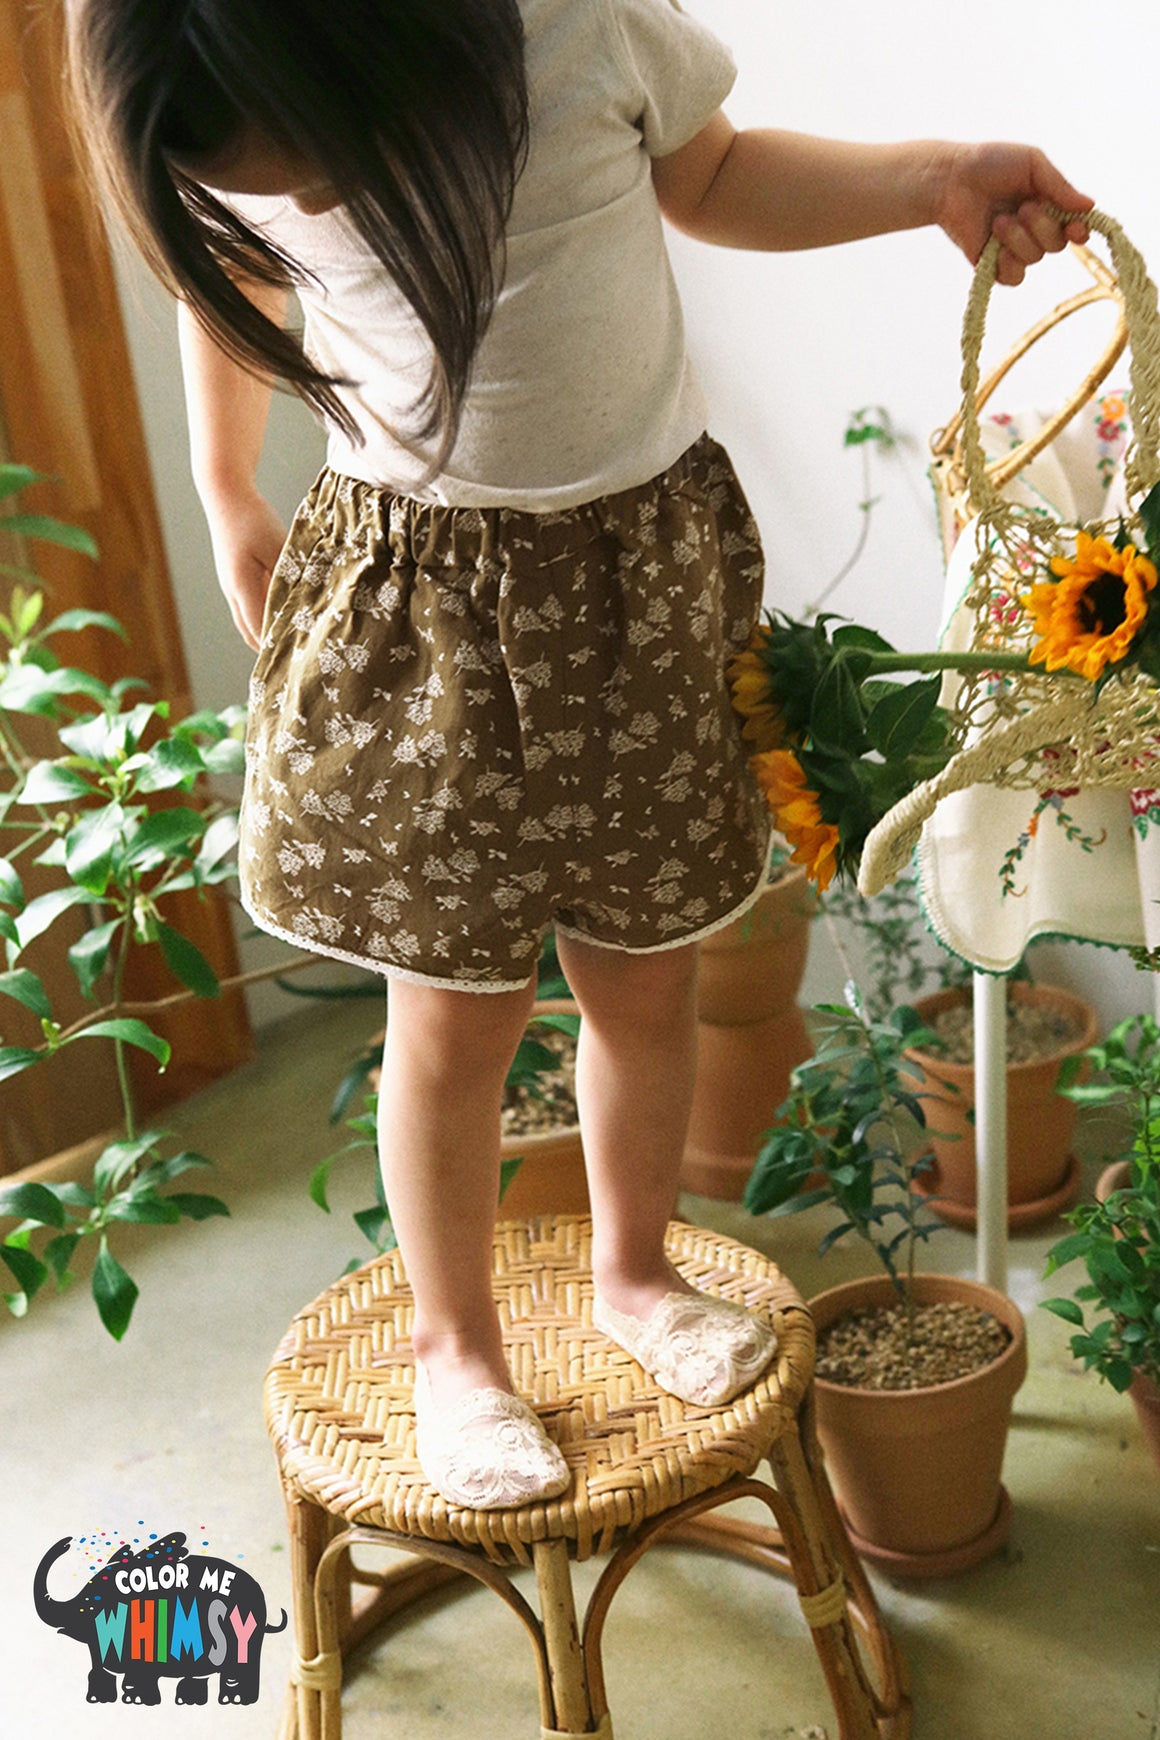 BN Como Shorts at Color Me WHIMSY Hip Kid's Fashion Ethically Made in South Korea